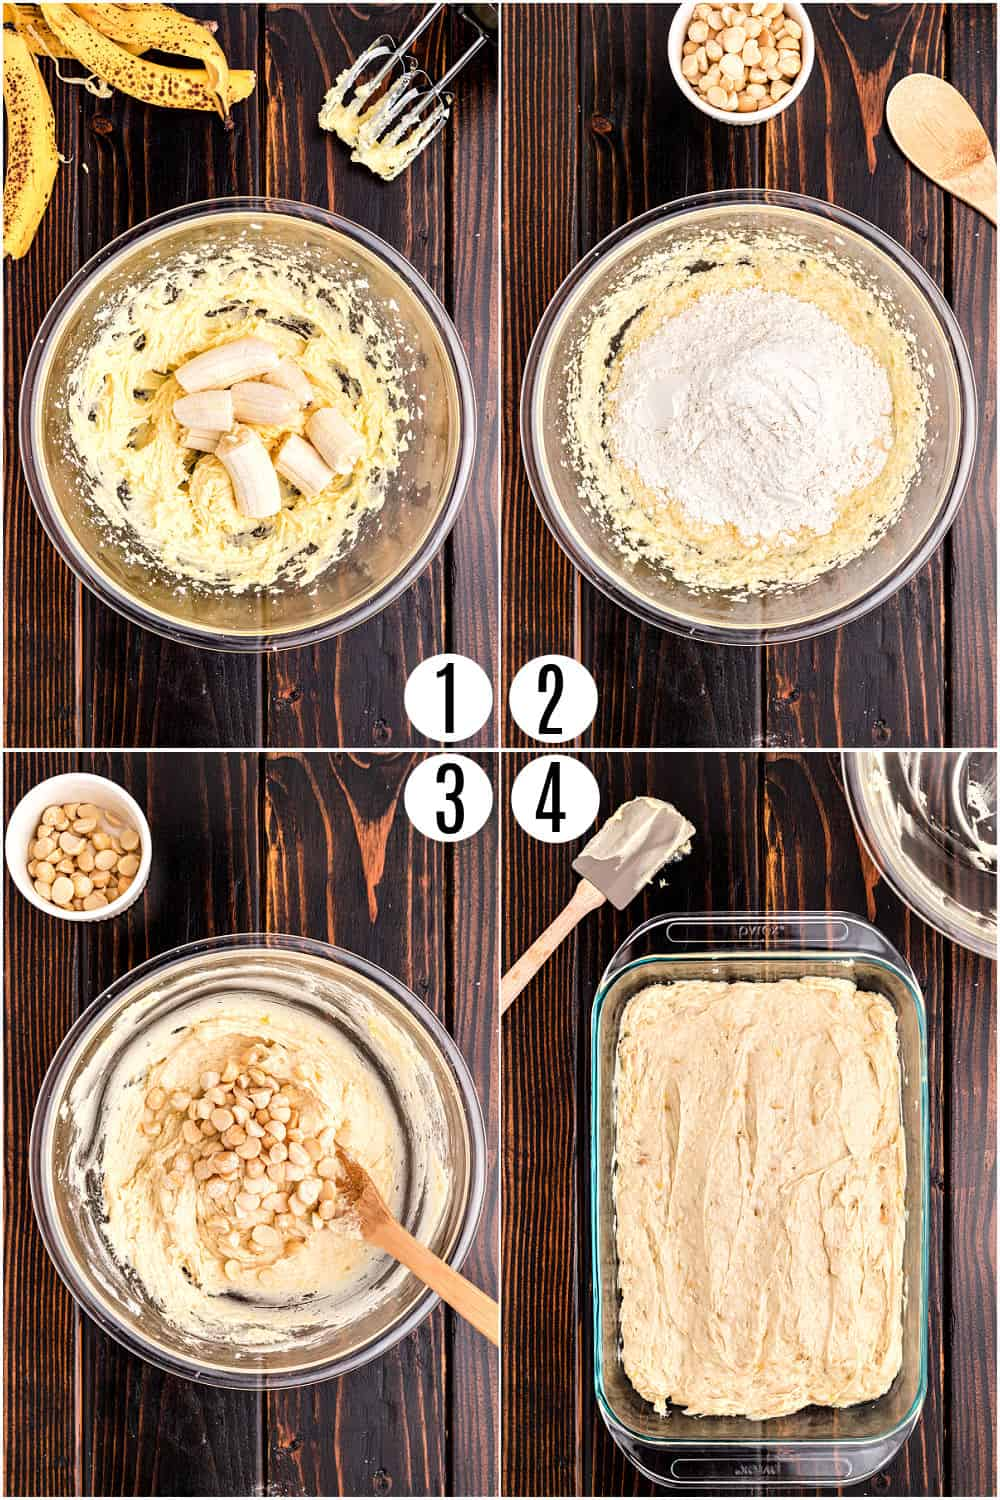 Step by step photos showing how to make banana cake with macadamia nuts and vanilla frosting.